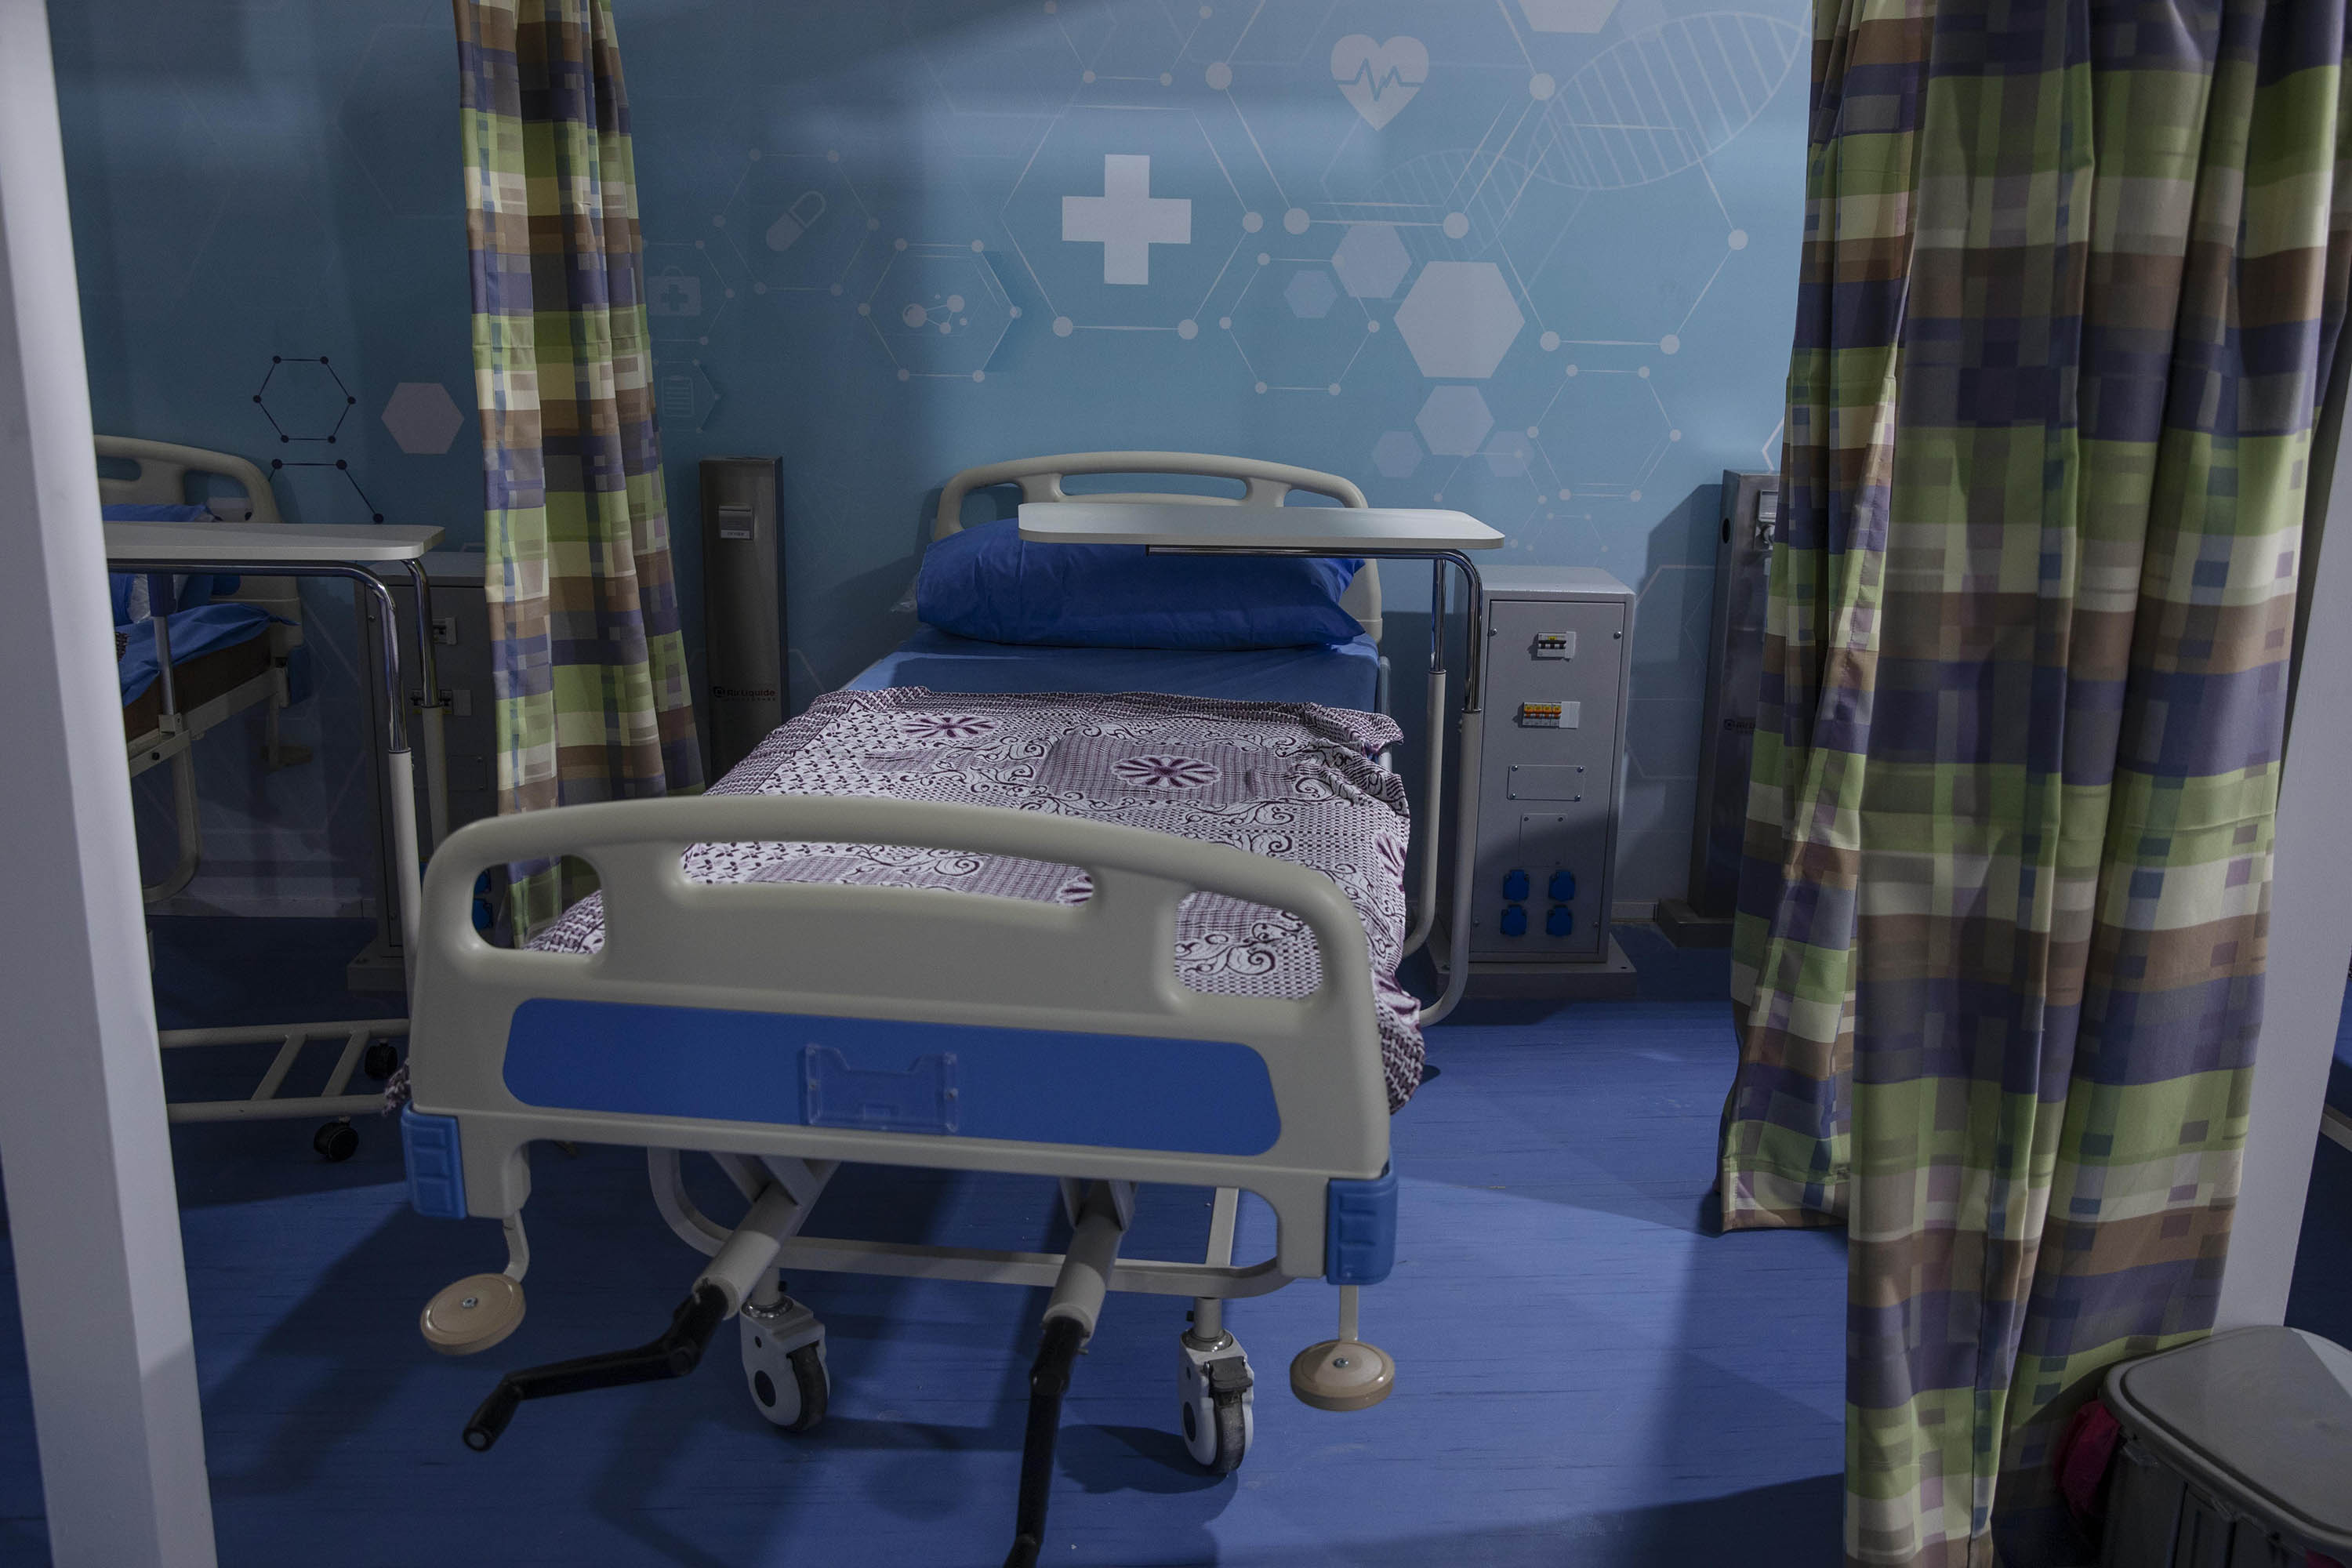 Hospital beds are prepared to receive COVID-19 patients at a field hospital in Cairo, Egypt, on June 17.